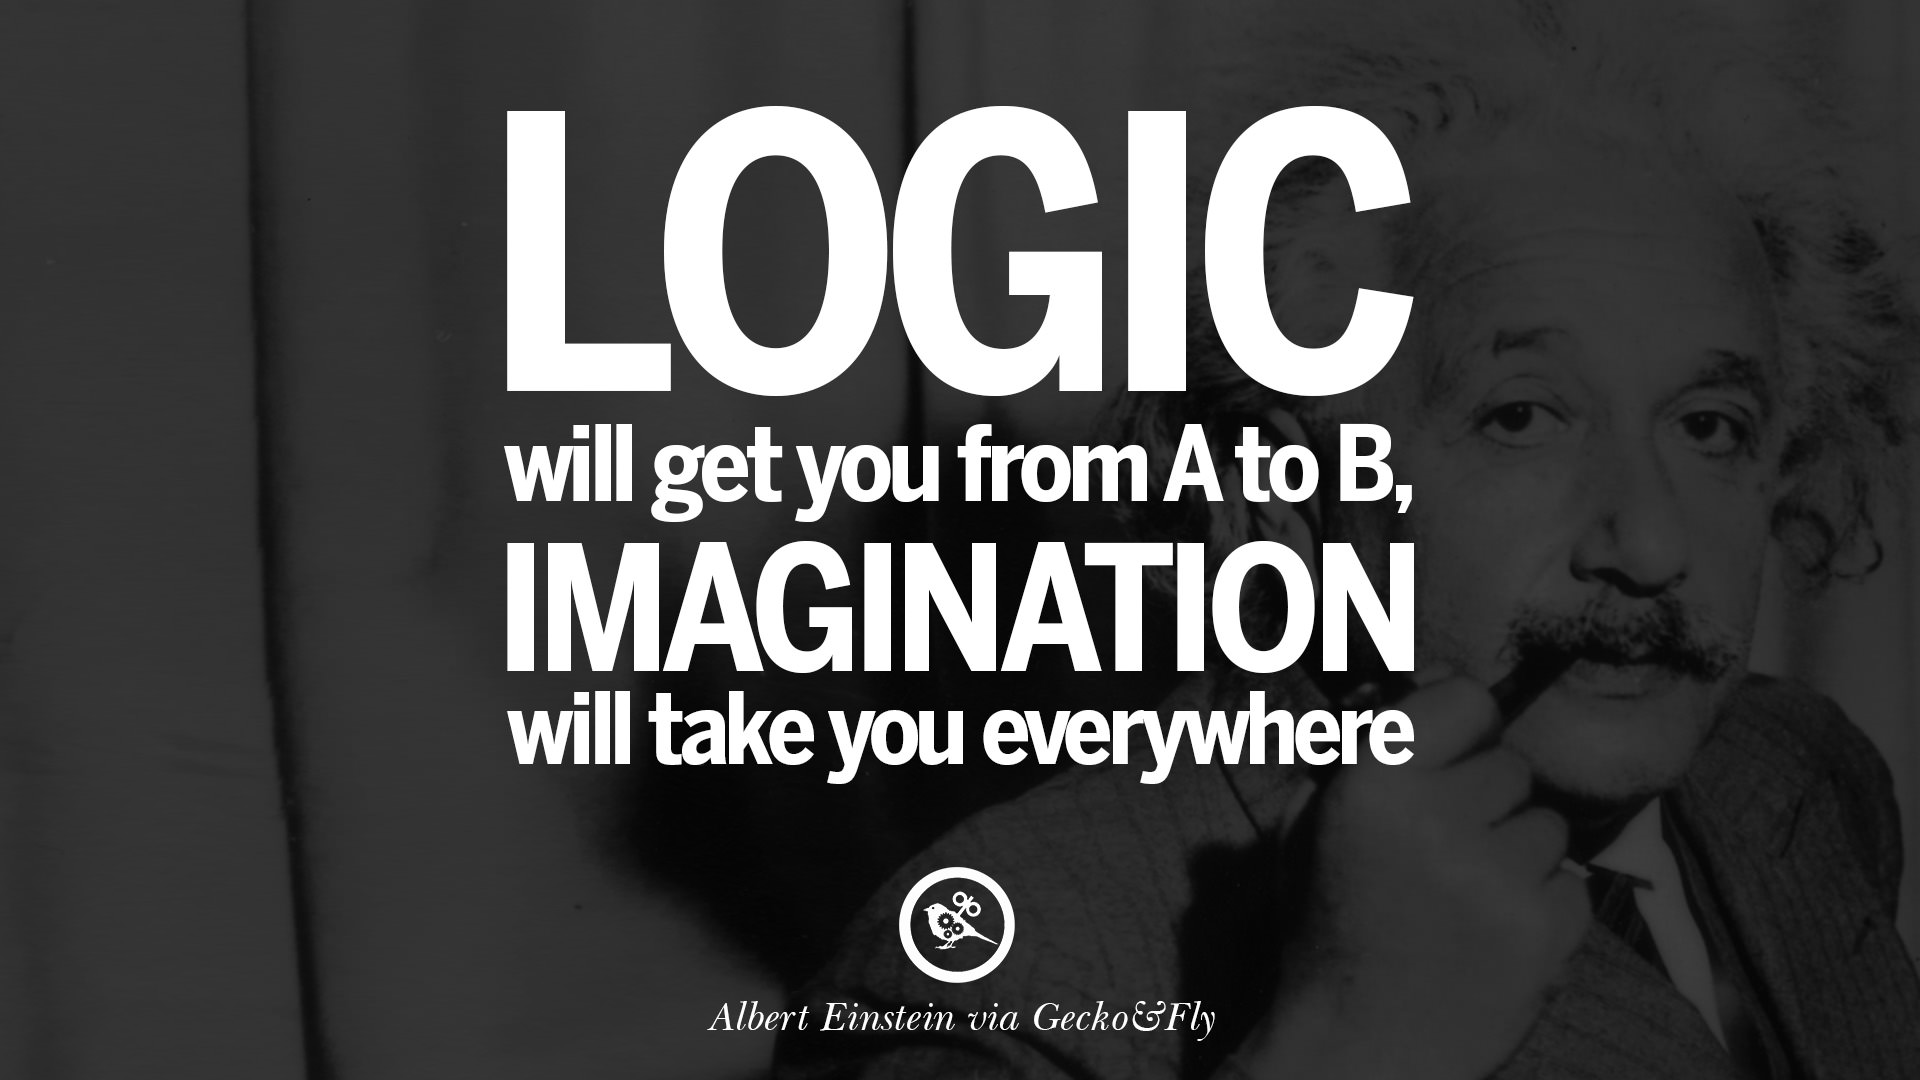 the many quotes of albert einstein As albert einstein once said, don't believe every quote you read on the internet, because i totally didn't say that today would have been einstein's 135th birthday, and to celebrate, we have nine quotes incorrectly attributed to einstein that you may have seen swirling around the internet lately .